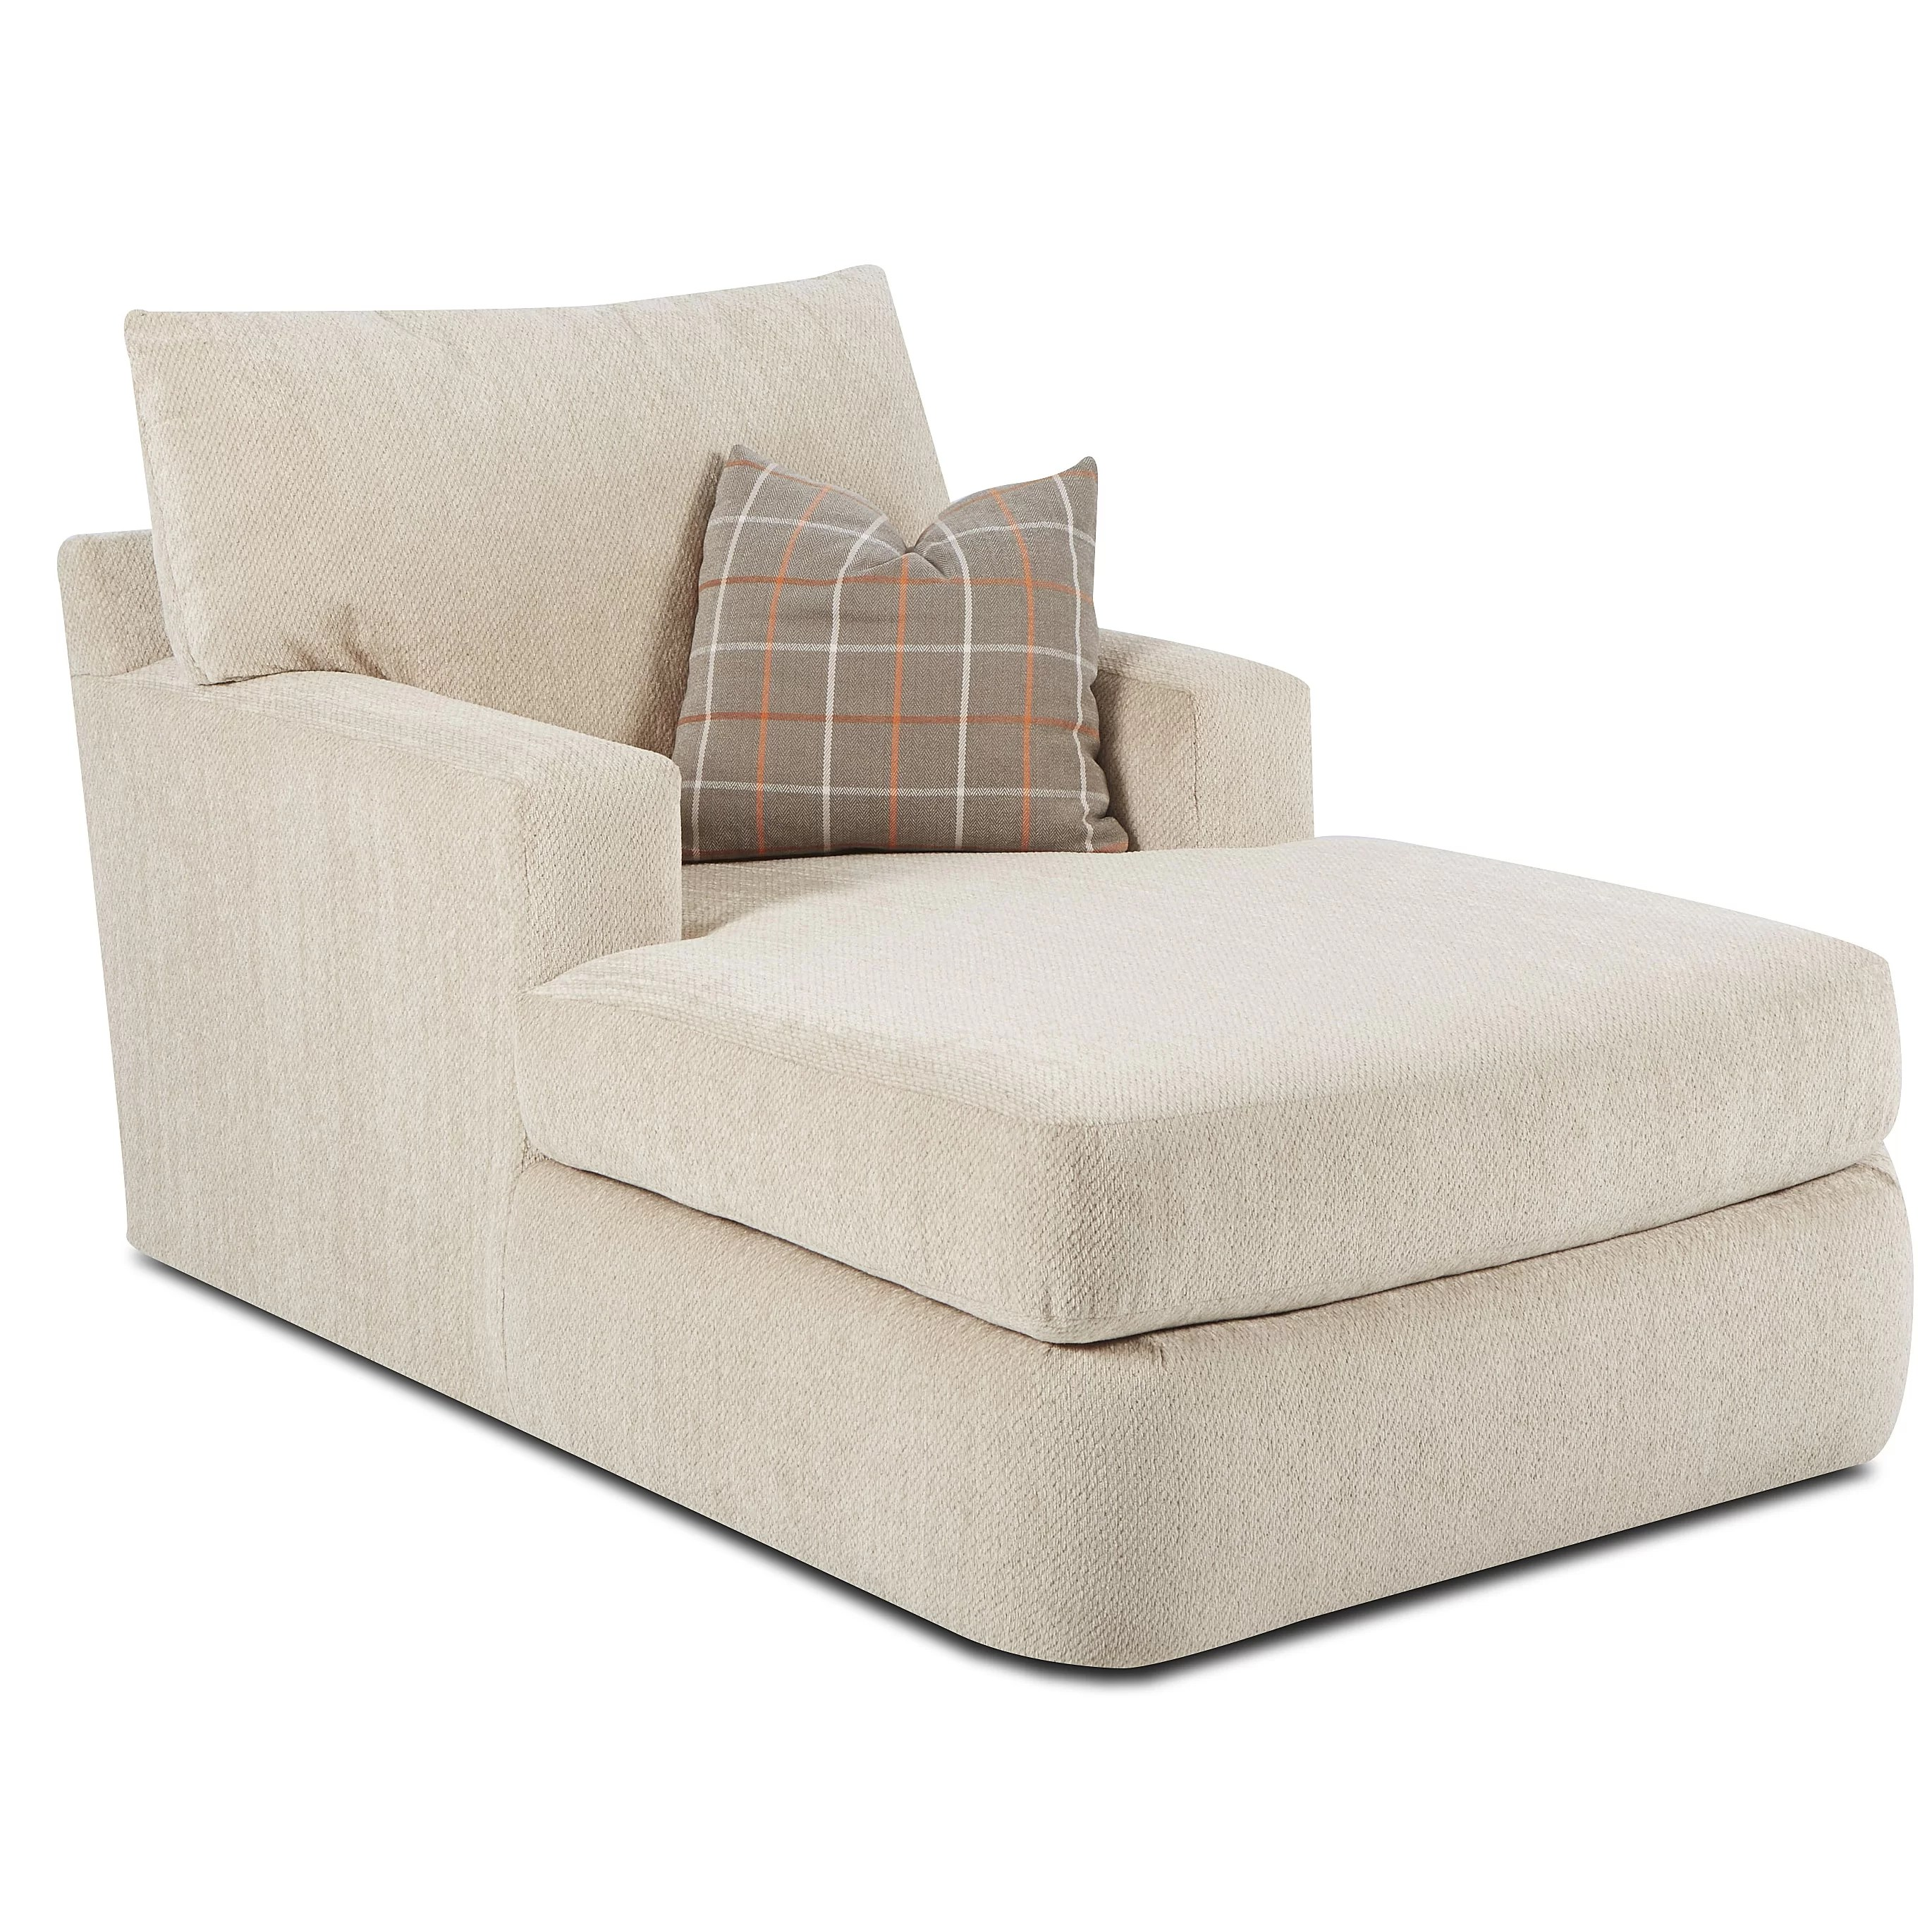 Chaise Chair Klaussner Furniture Simms Chaise Lounge And Reviews Wayfair